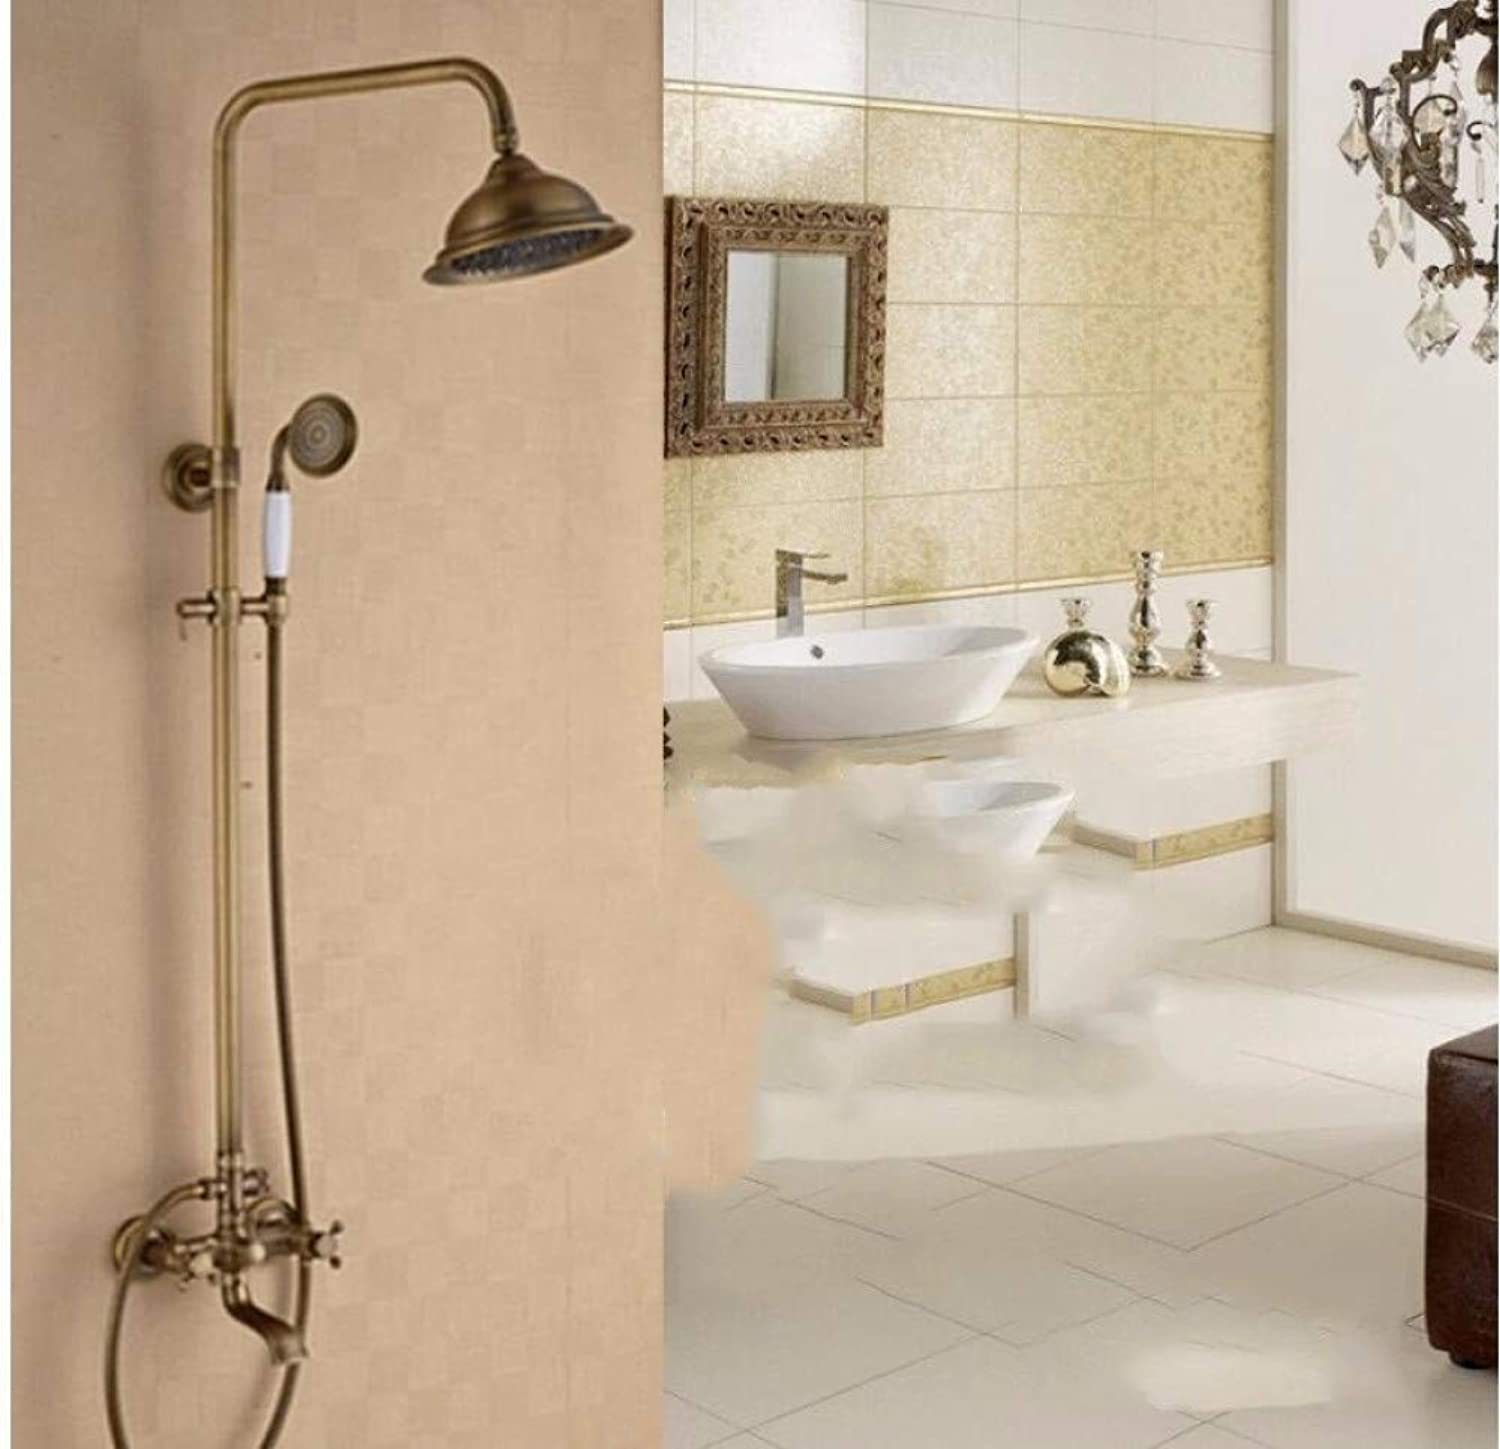 GZF Antique Brass Tub Shower Faucet set with Shower Head Hand Shower